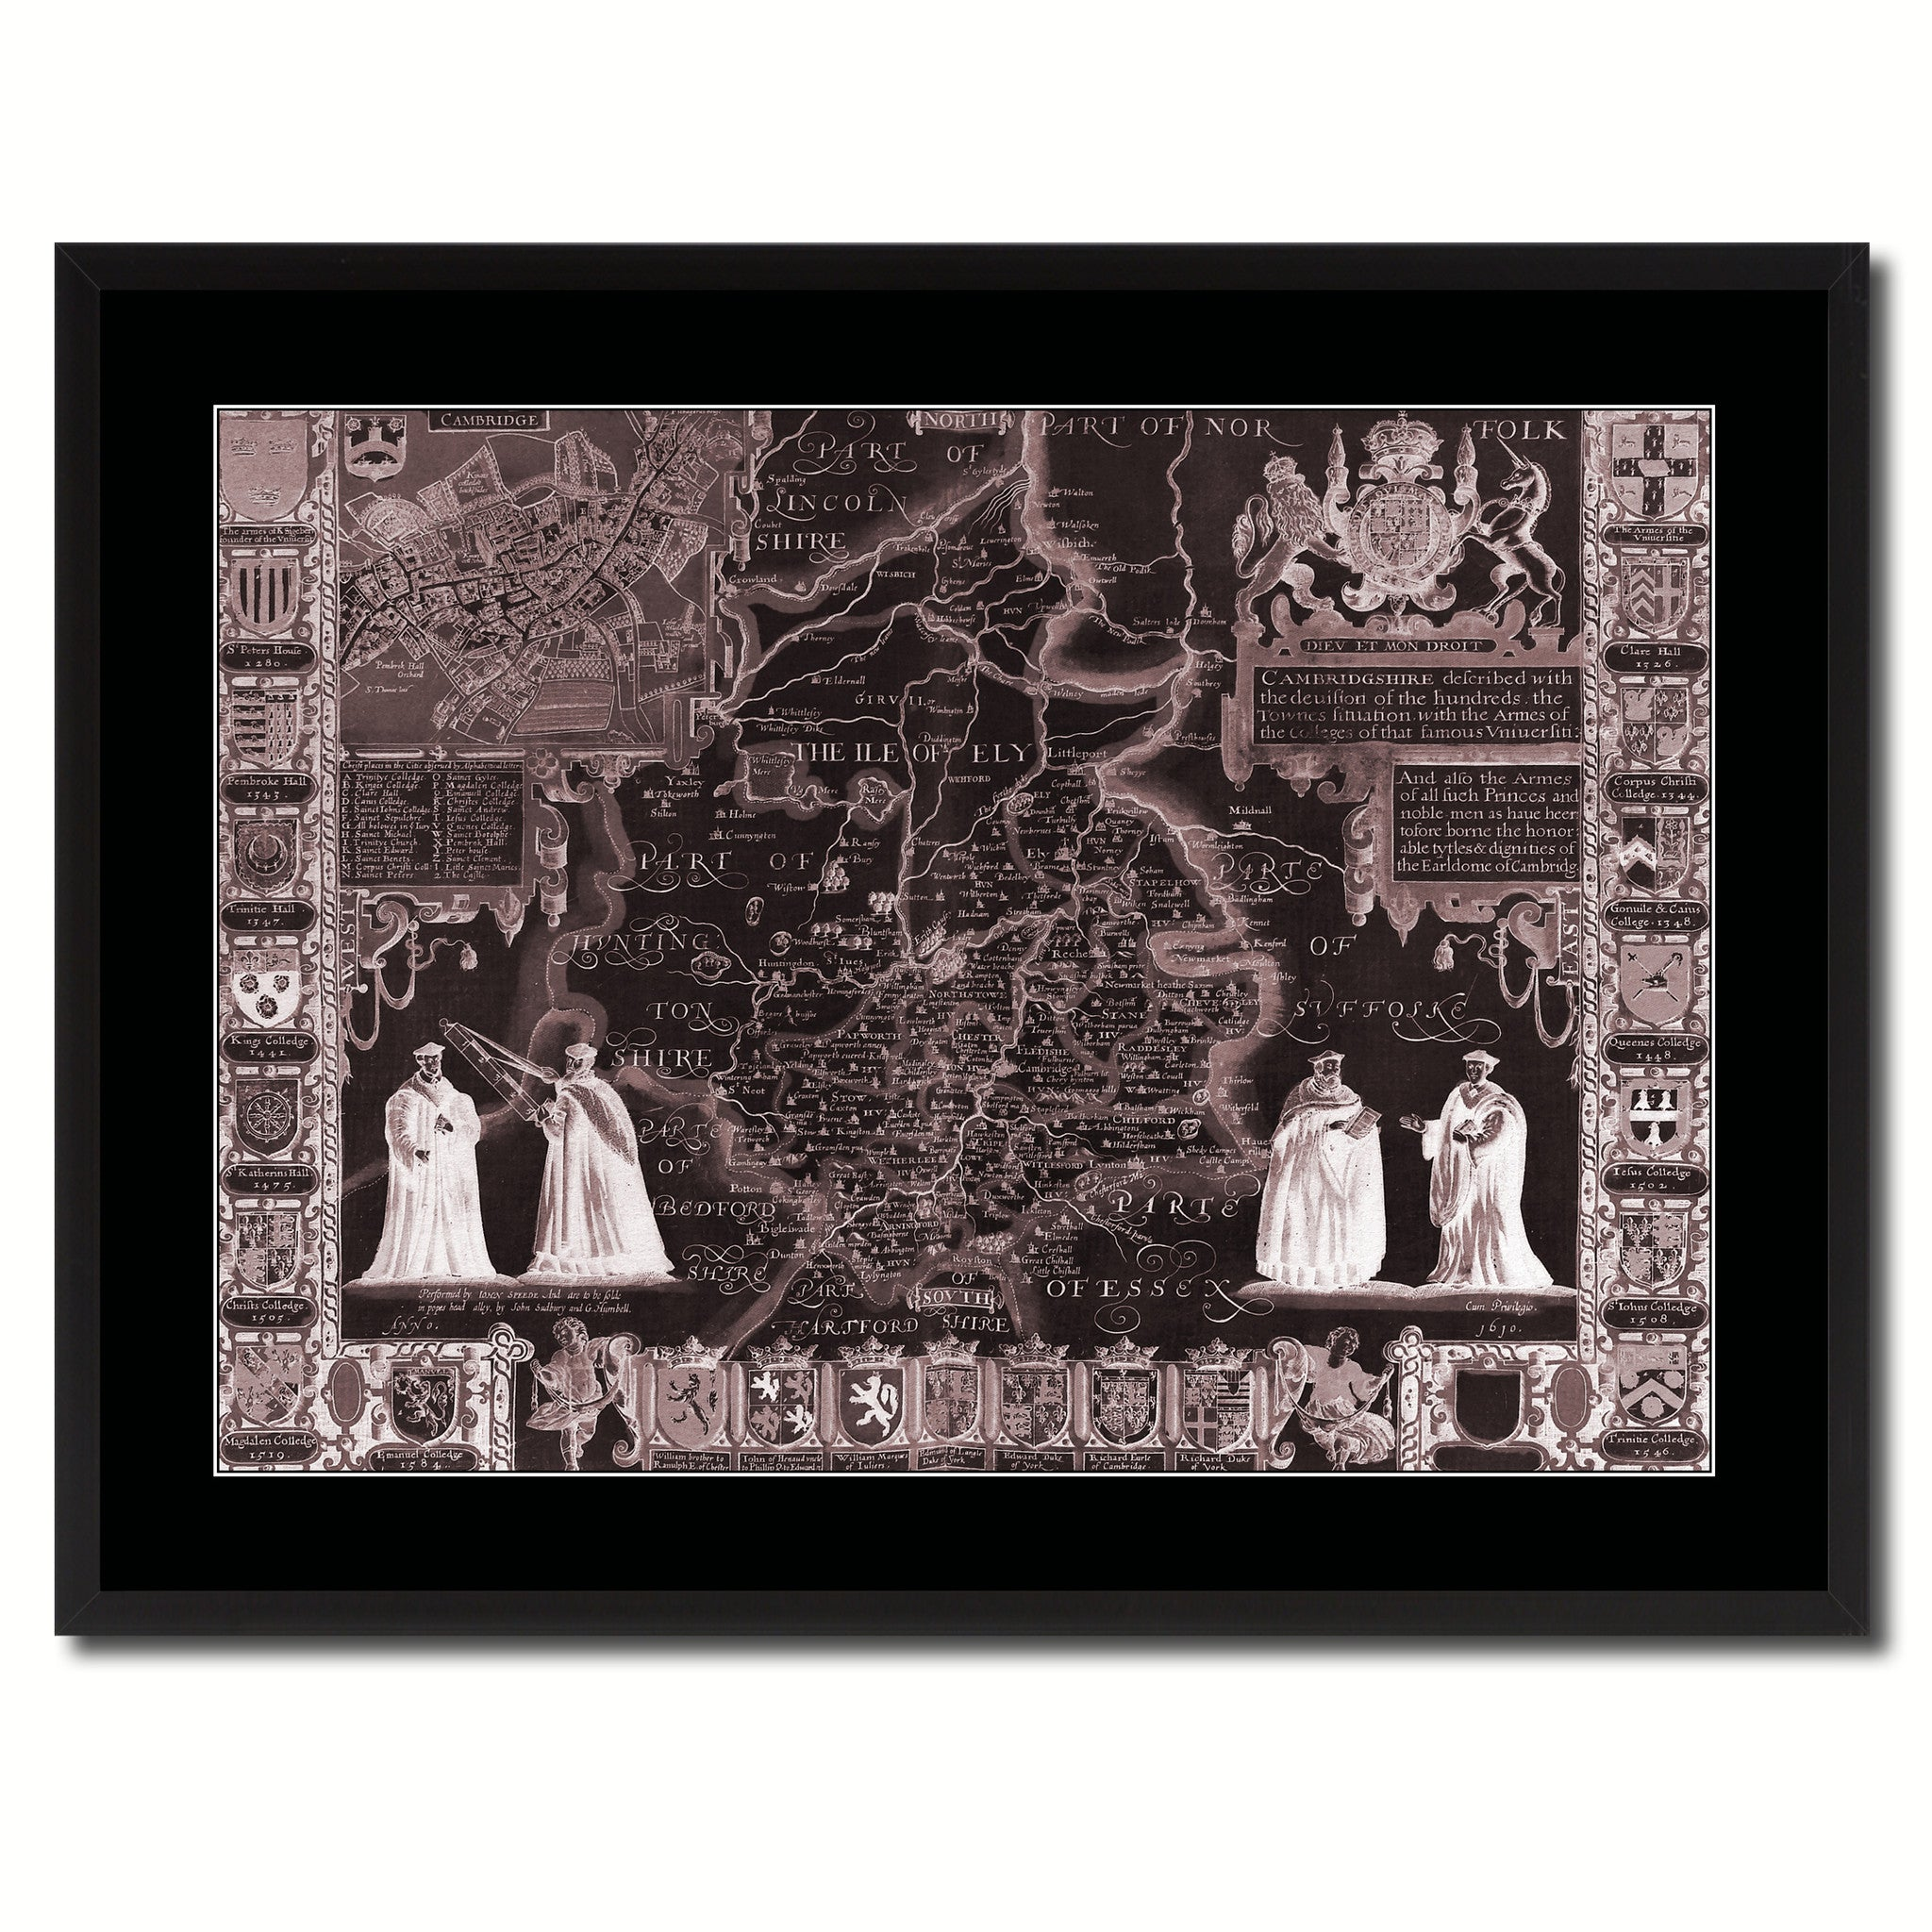 Cambridgeshire Vintage Vivid Sepia Map Canvas Print, Picture Frames Home Decor Wall Art Decoration Gifts